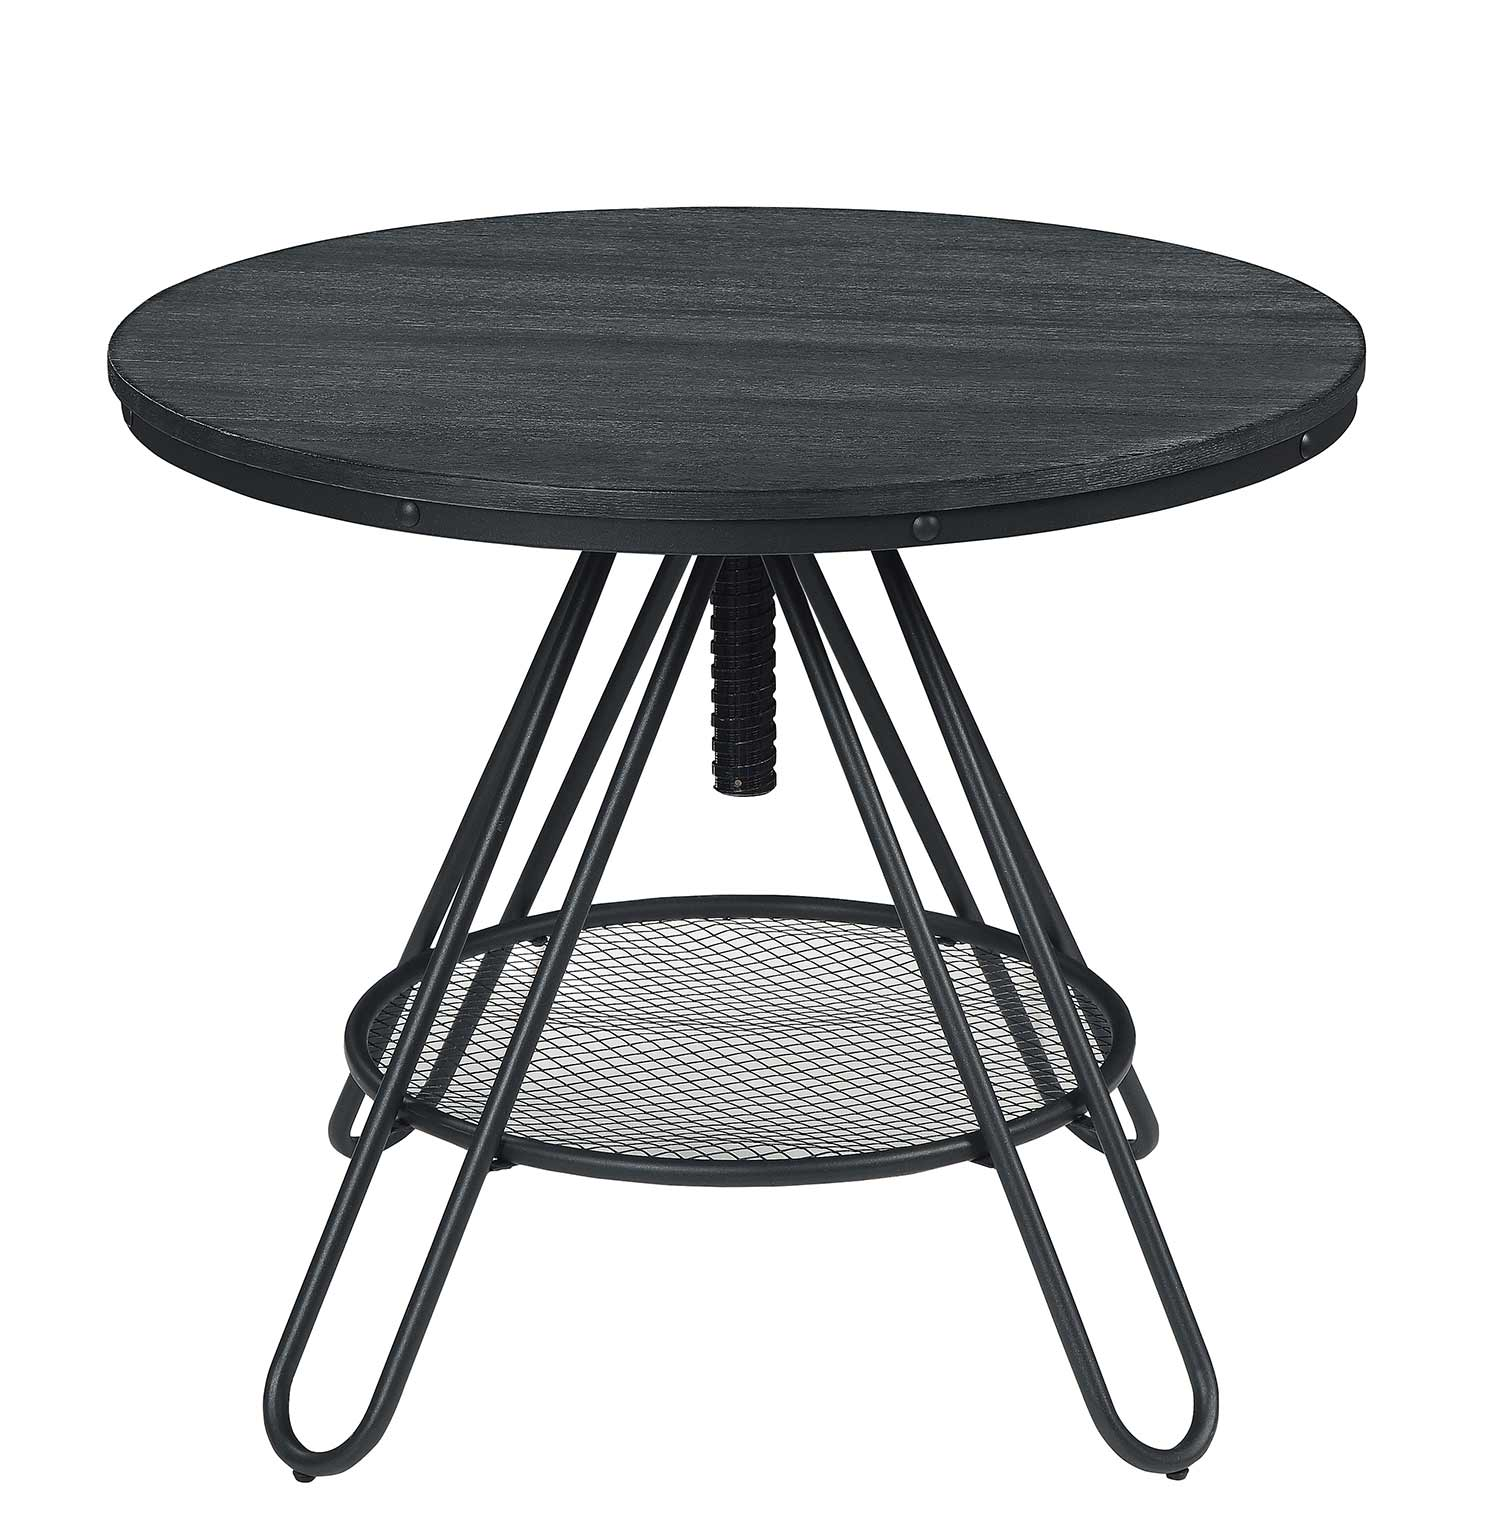 Homelegance Cirrus Adjustable Round Dining Table - Weathered Gray